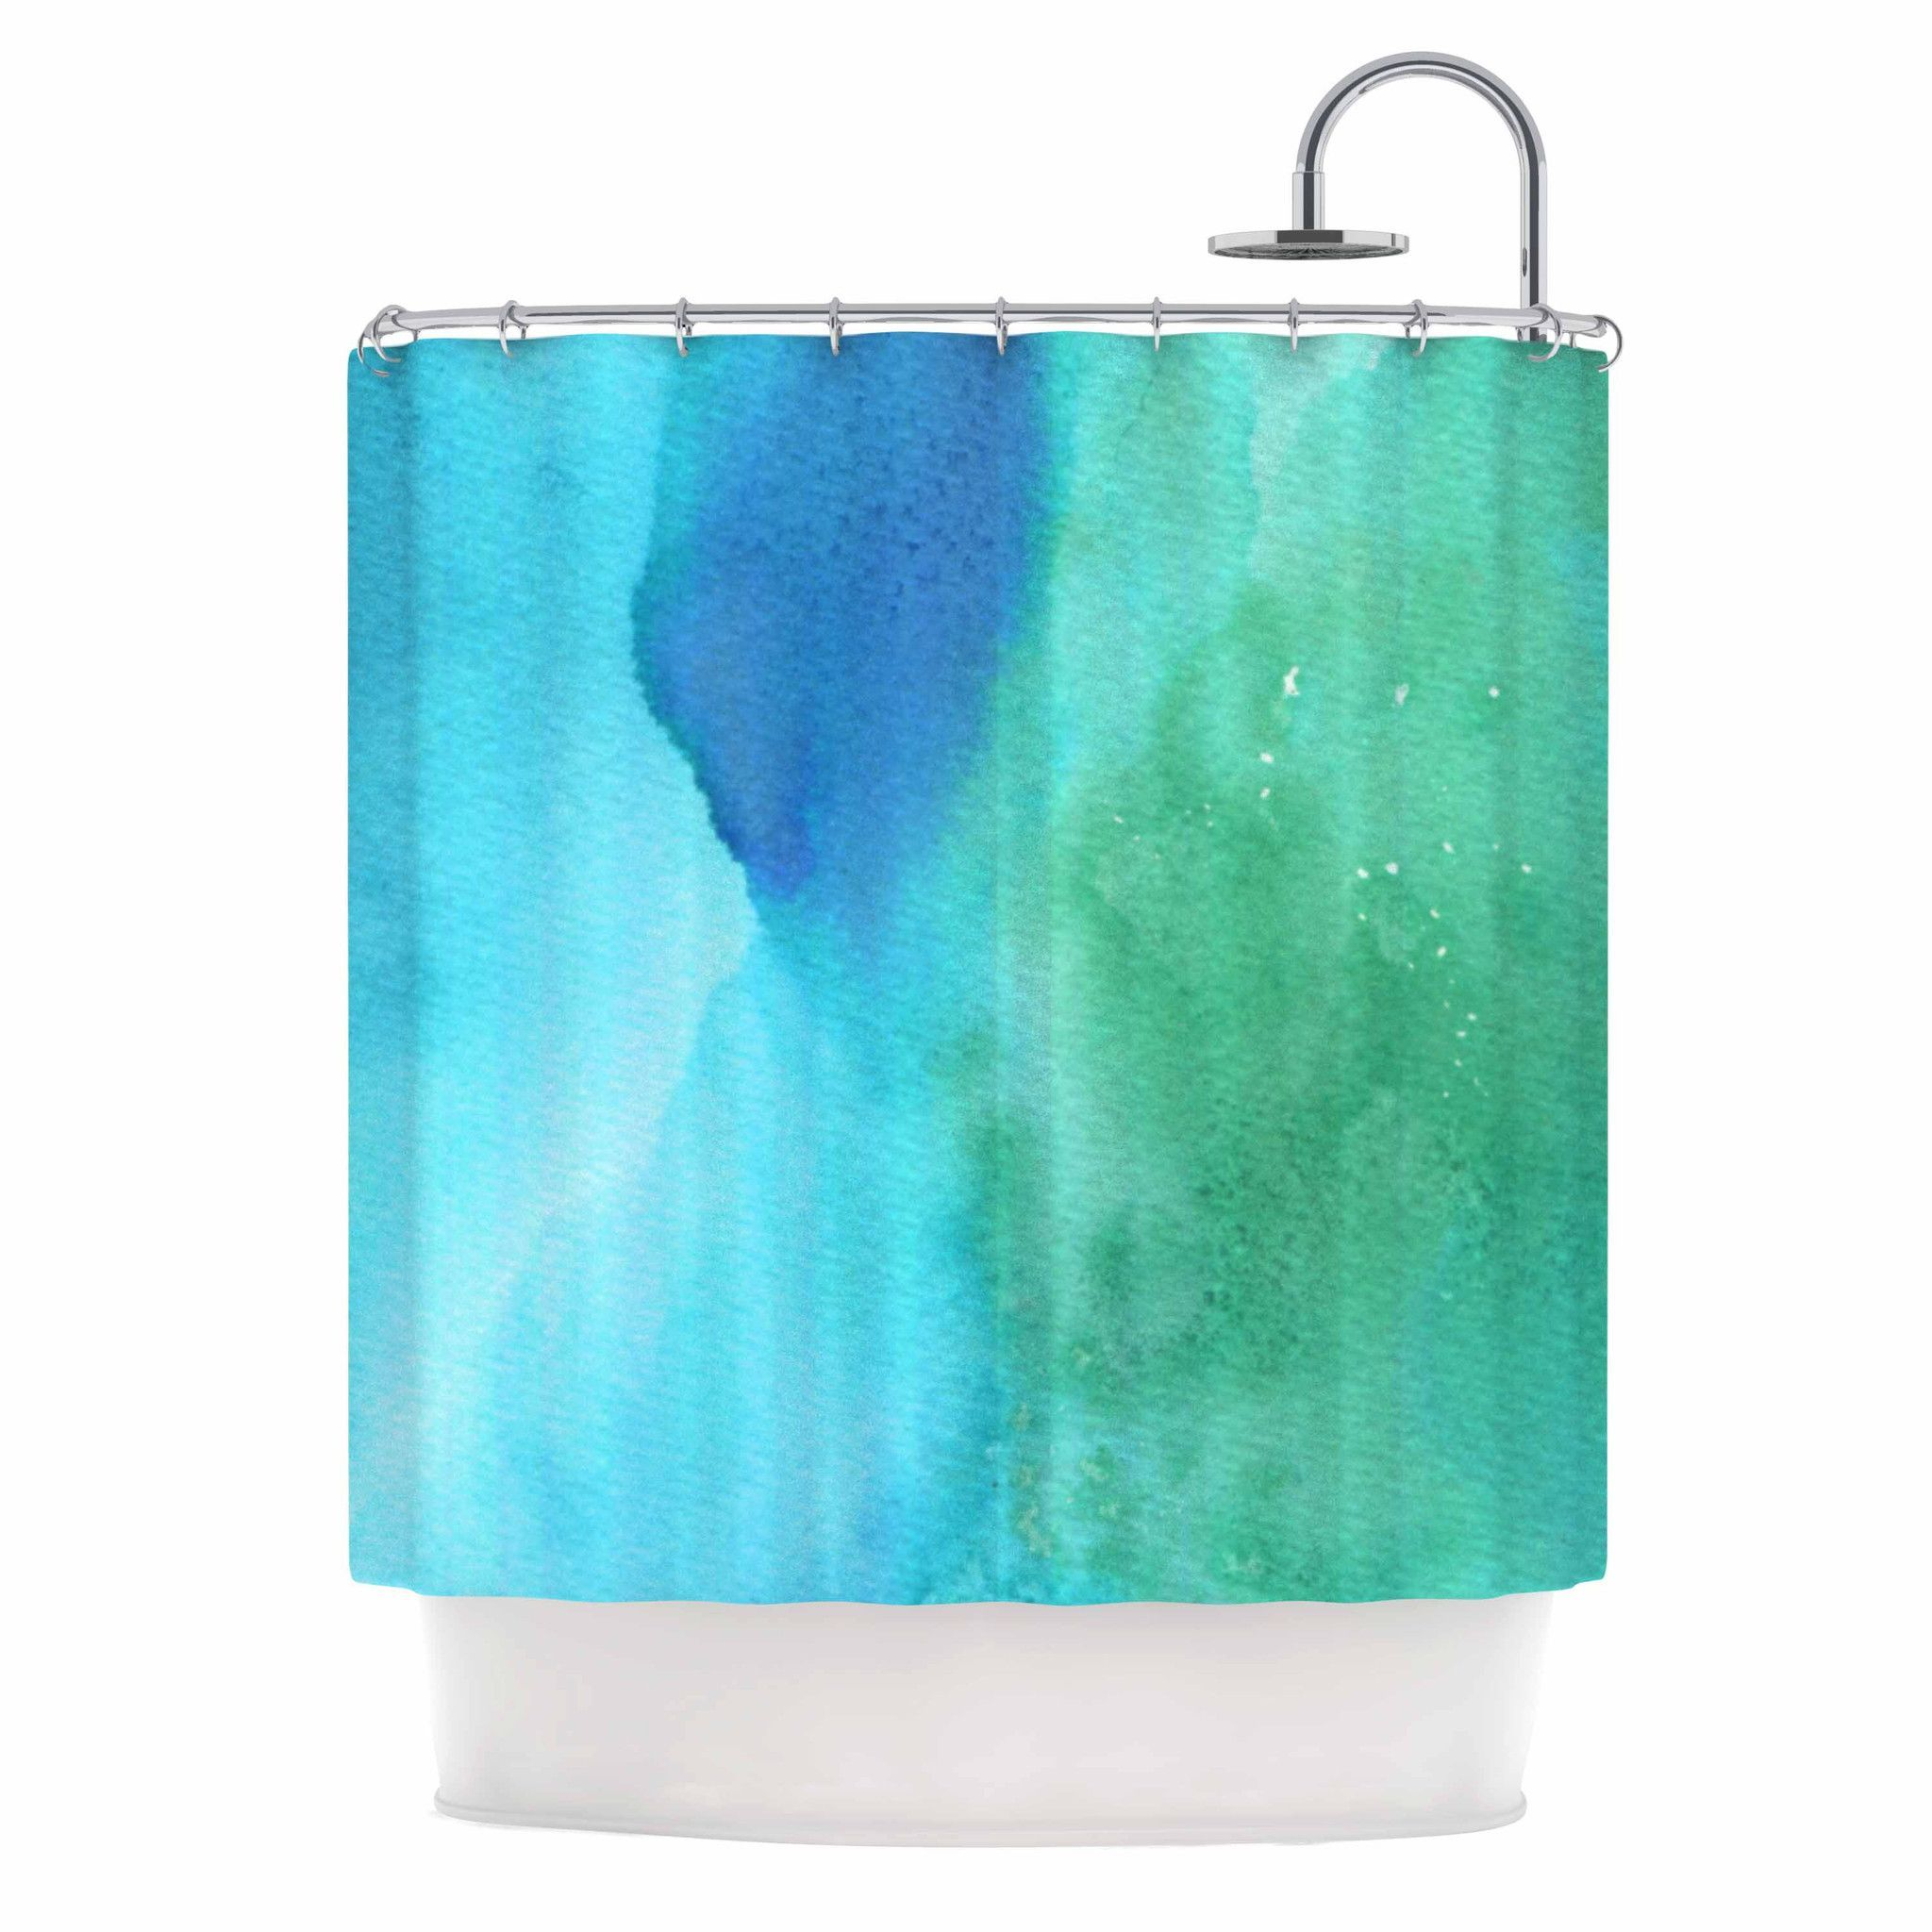 shower nikki bethany brown curtain astonishing fabric strange kess zq blue inhouse beach encouragement incredible curtains